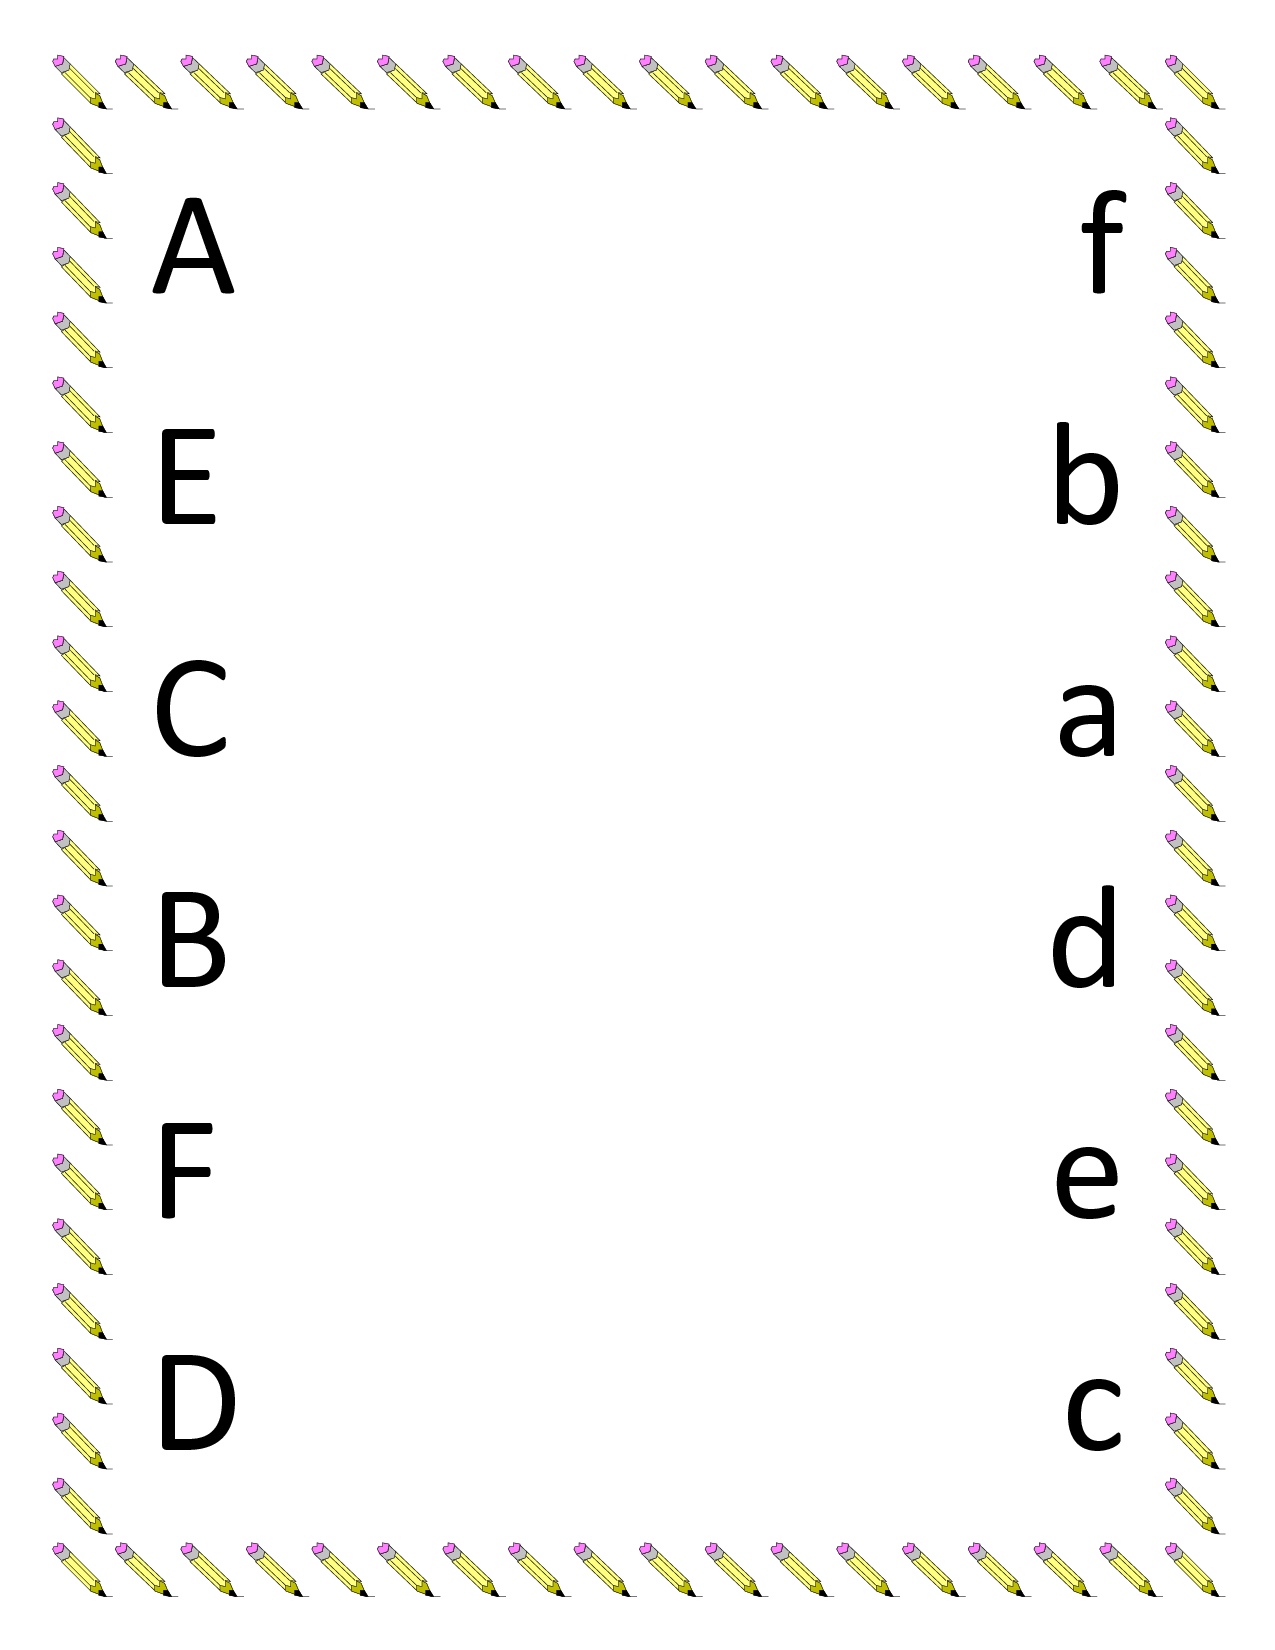 Preschool Worksheets Match Numbers To Pictures – Kindergarten Worksheet Printables